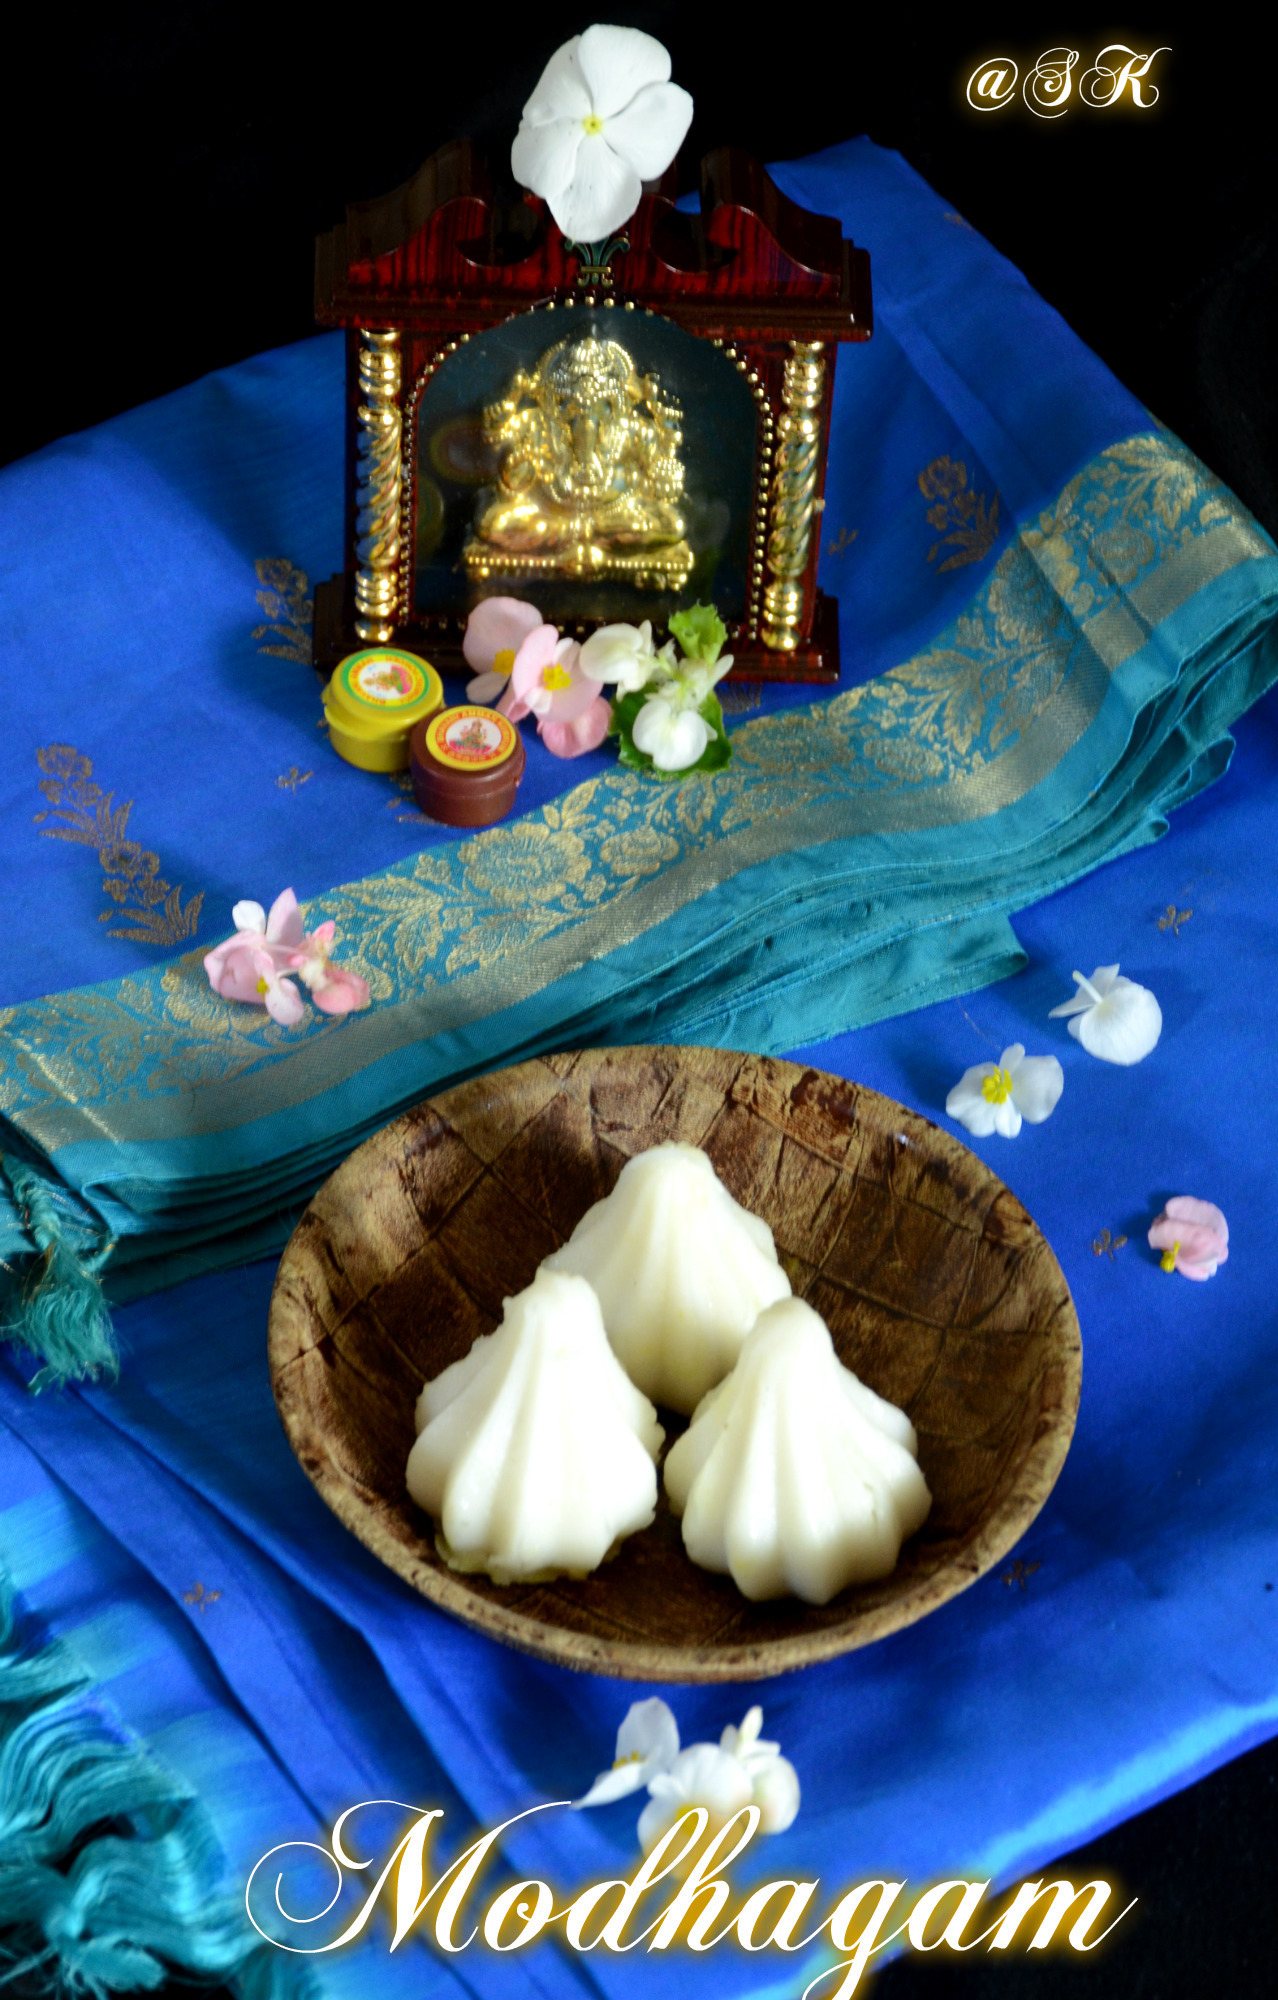 Modhagam -  மோதகம் - Moong dal stuffed rice dumplings - Vinayagar Chathurthi special